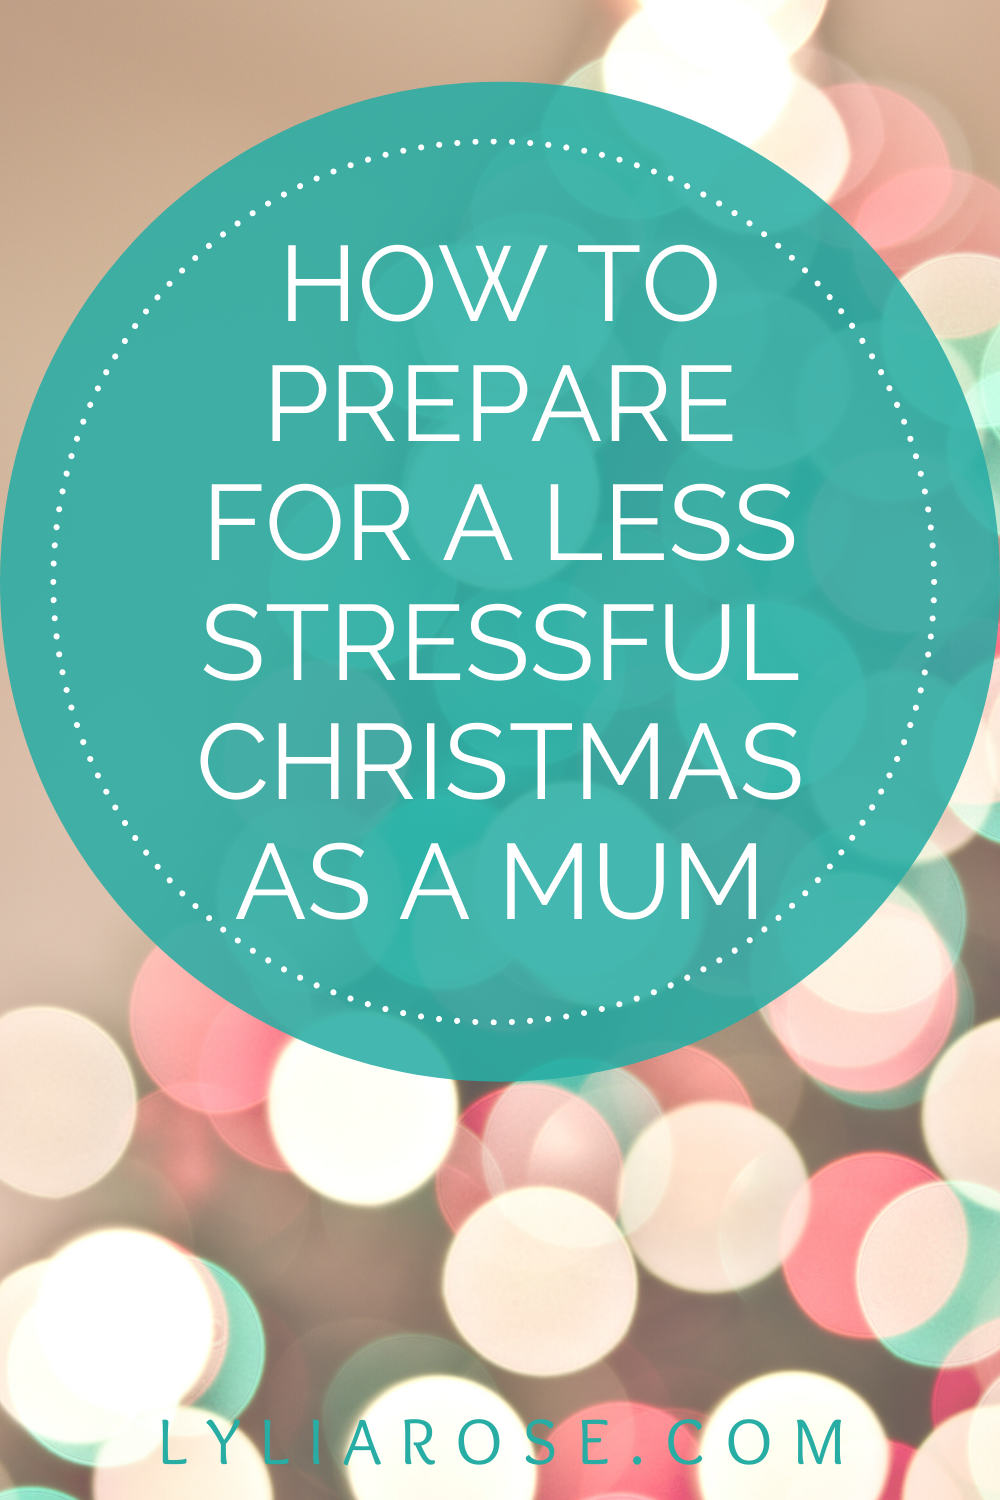 How to prepare for a less stressful Christmas as a mum (2)